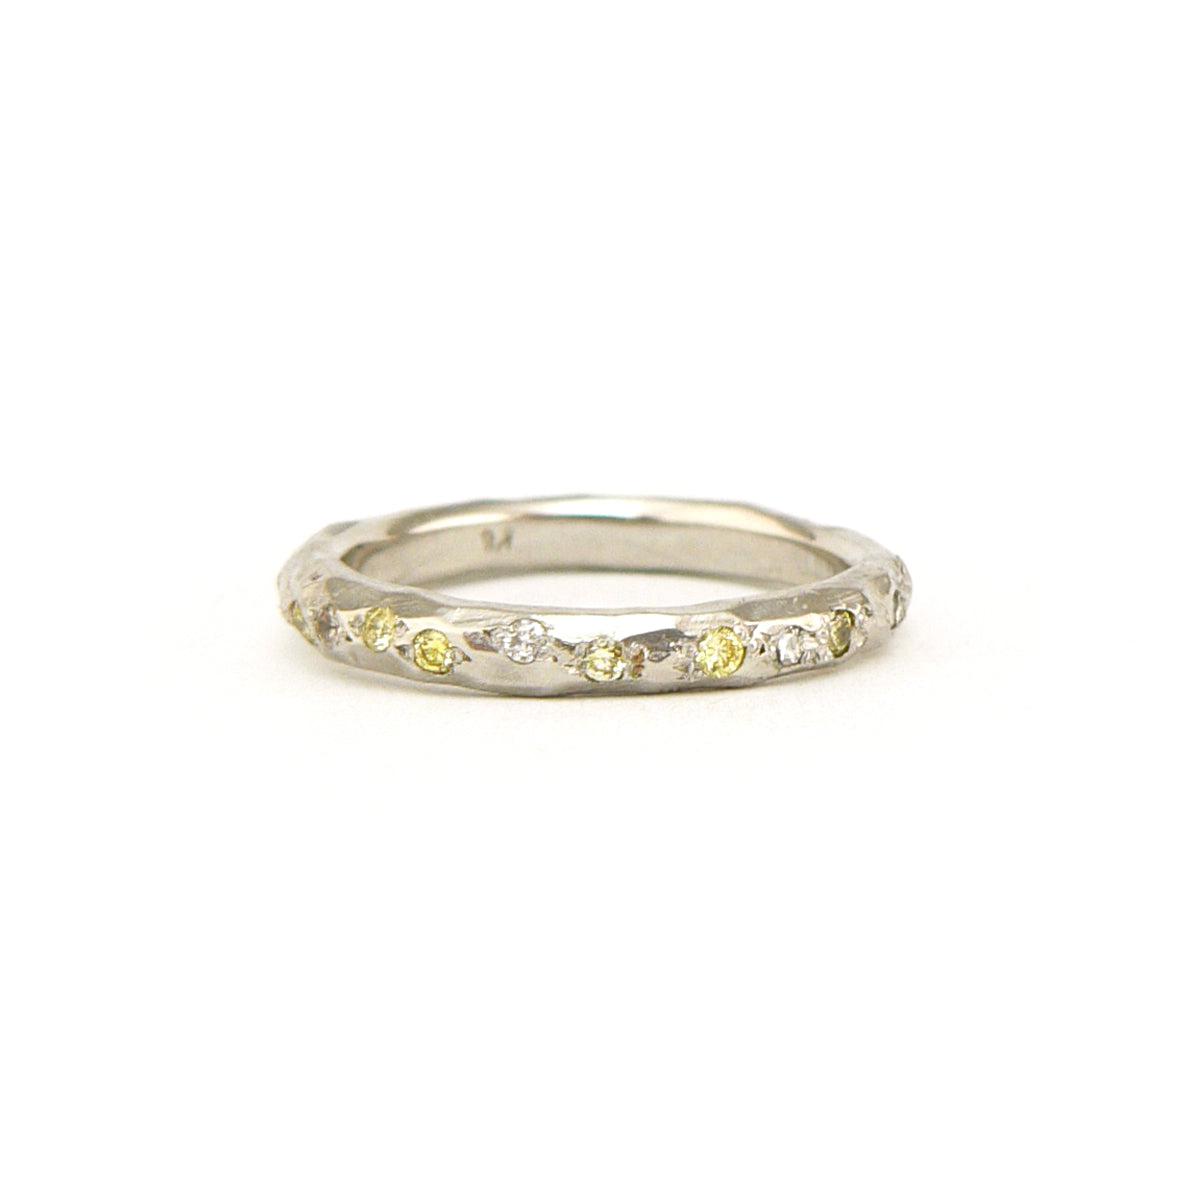 yellow and white diamond wedding band in platinum, bespoke custom handmade